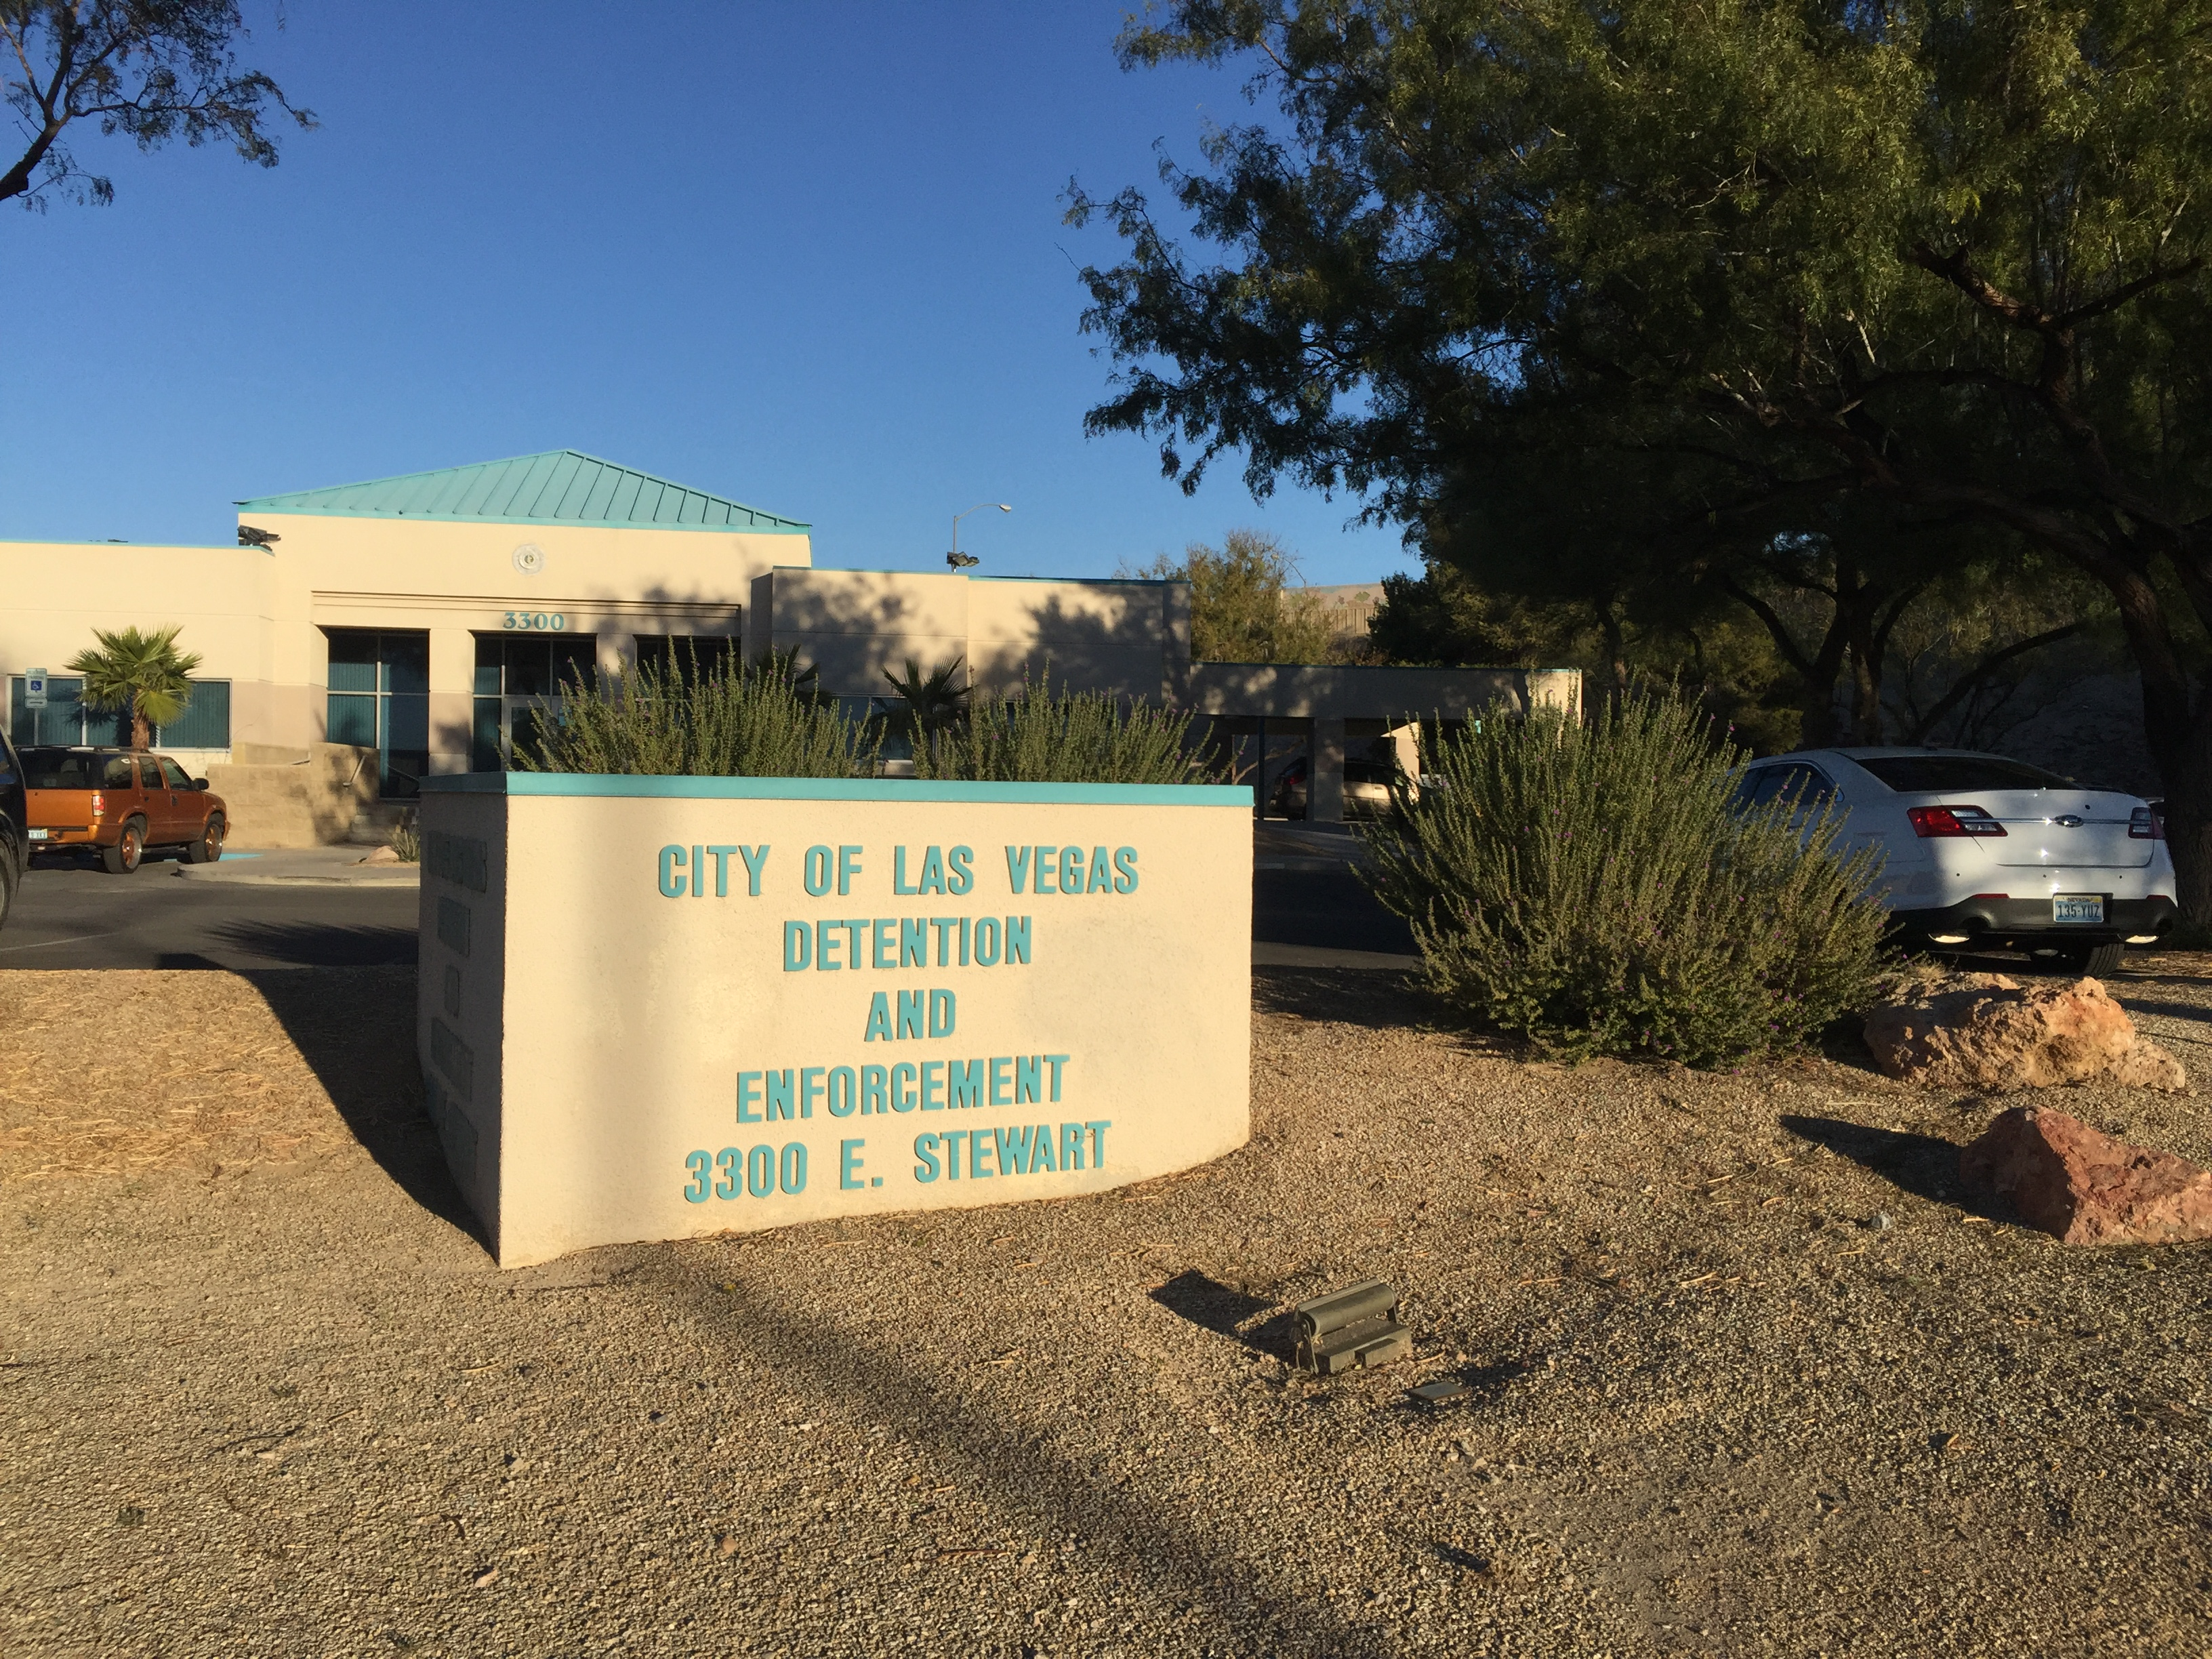 City of Las Vegas Detention Center Inmate Search